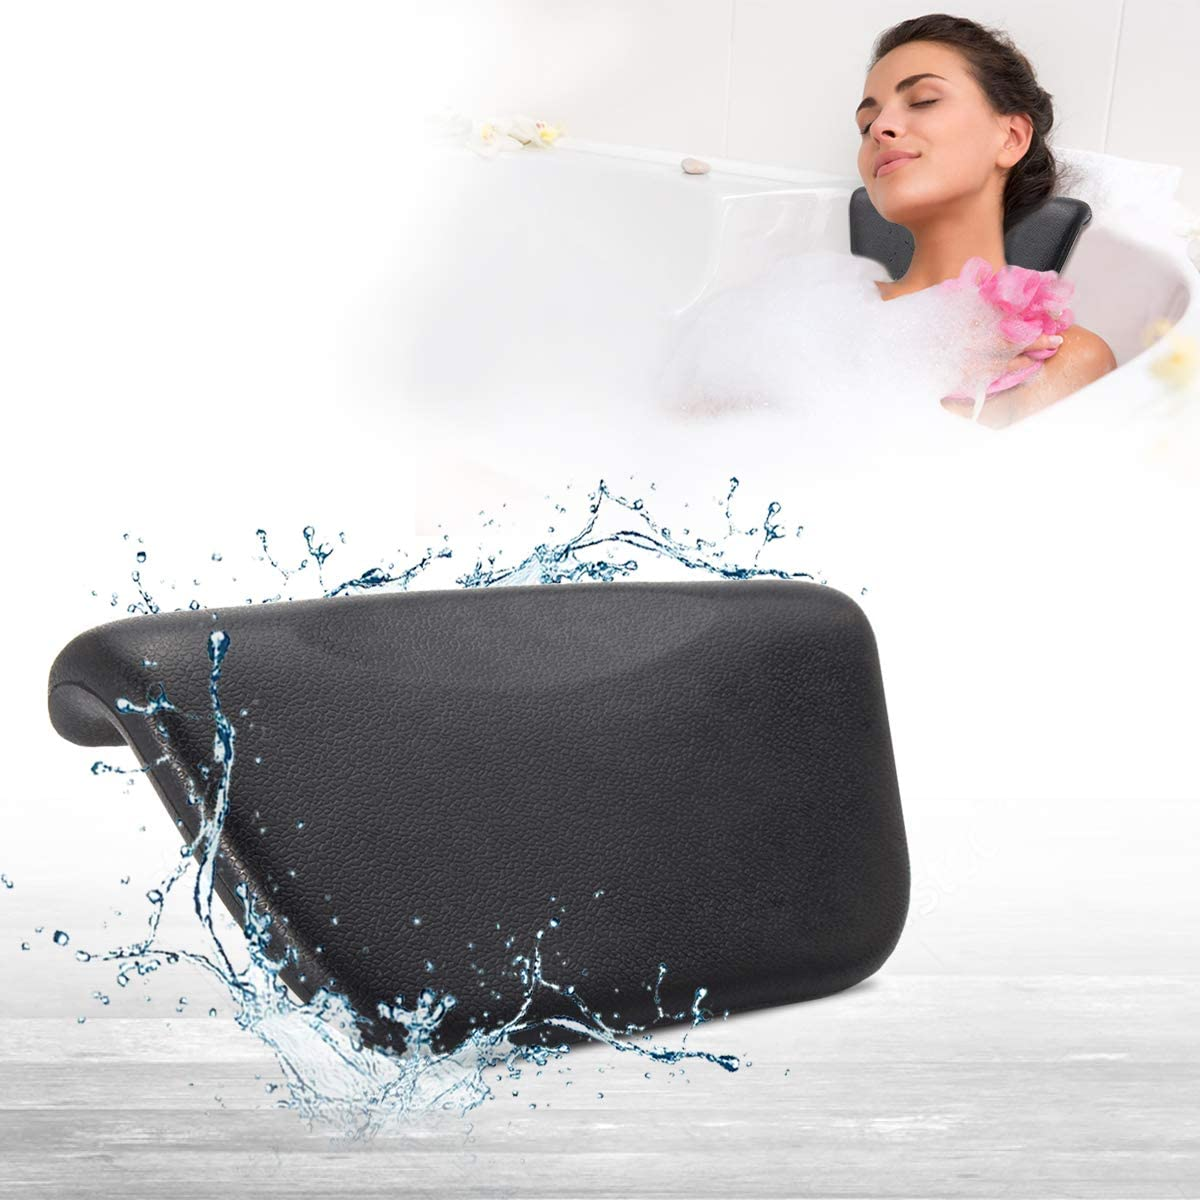 ESSORT Waterproof Spa Bath Pillow, PU  Bath Cushion with Non-Slip Suction Cups WAS £12.99 NOW £6.49 w/code ESSORTH3  + 10% voucher on listing @ Amazon